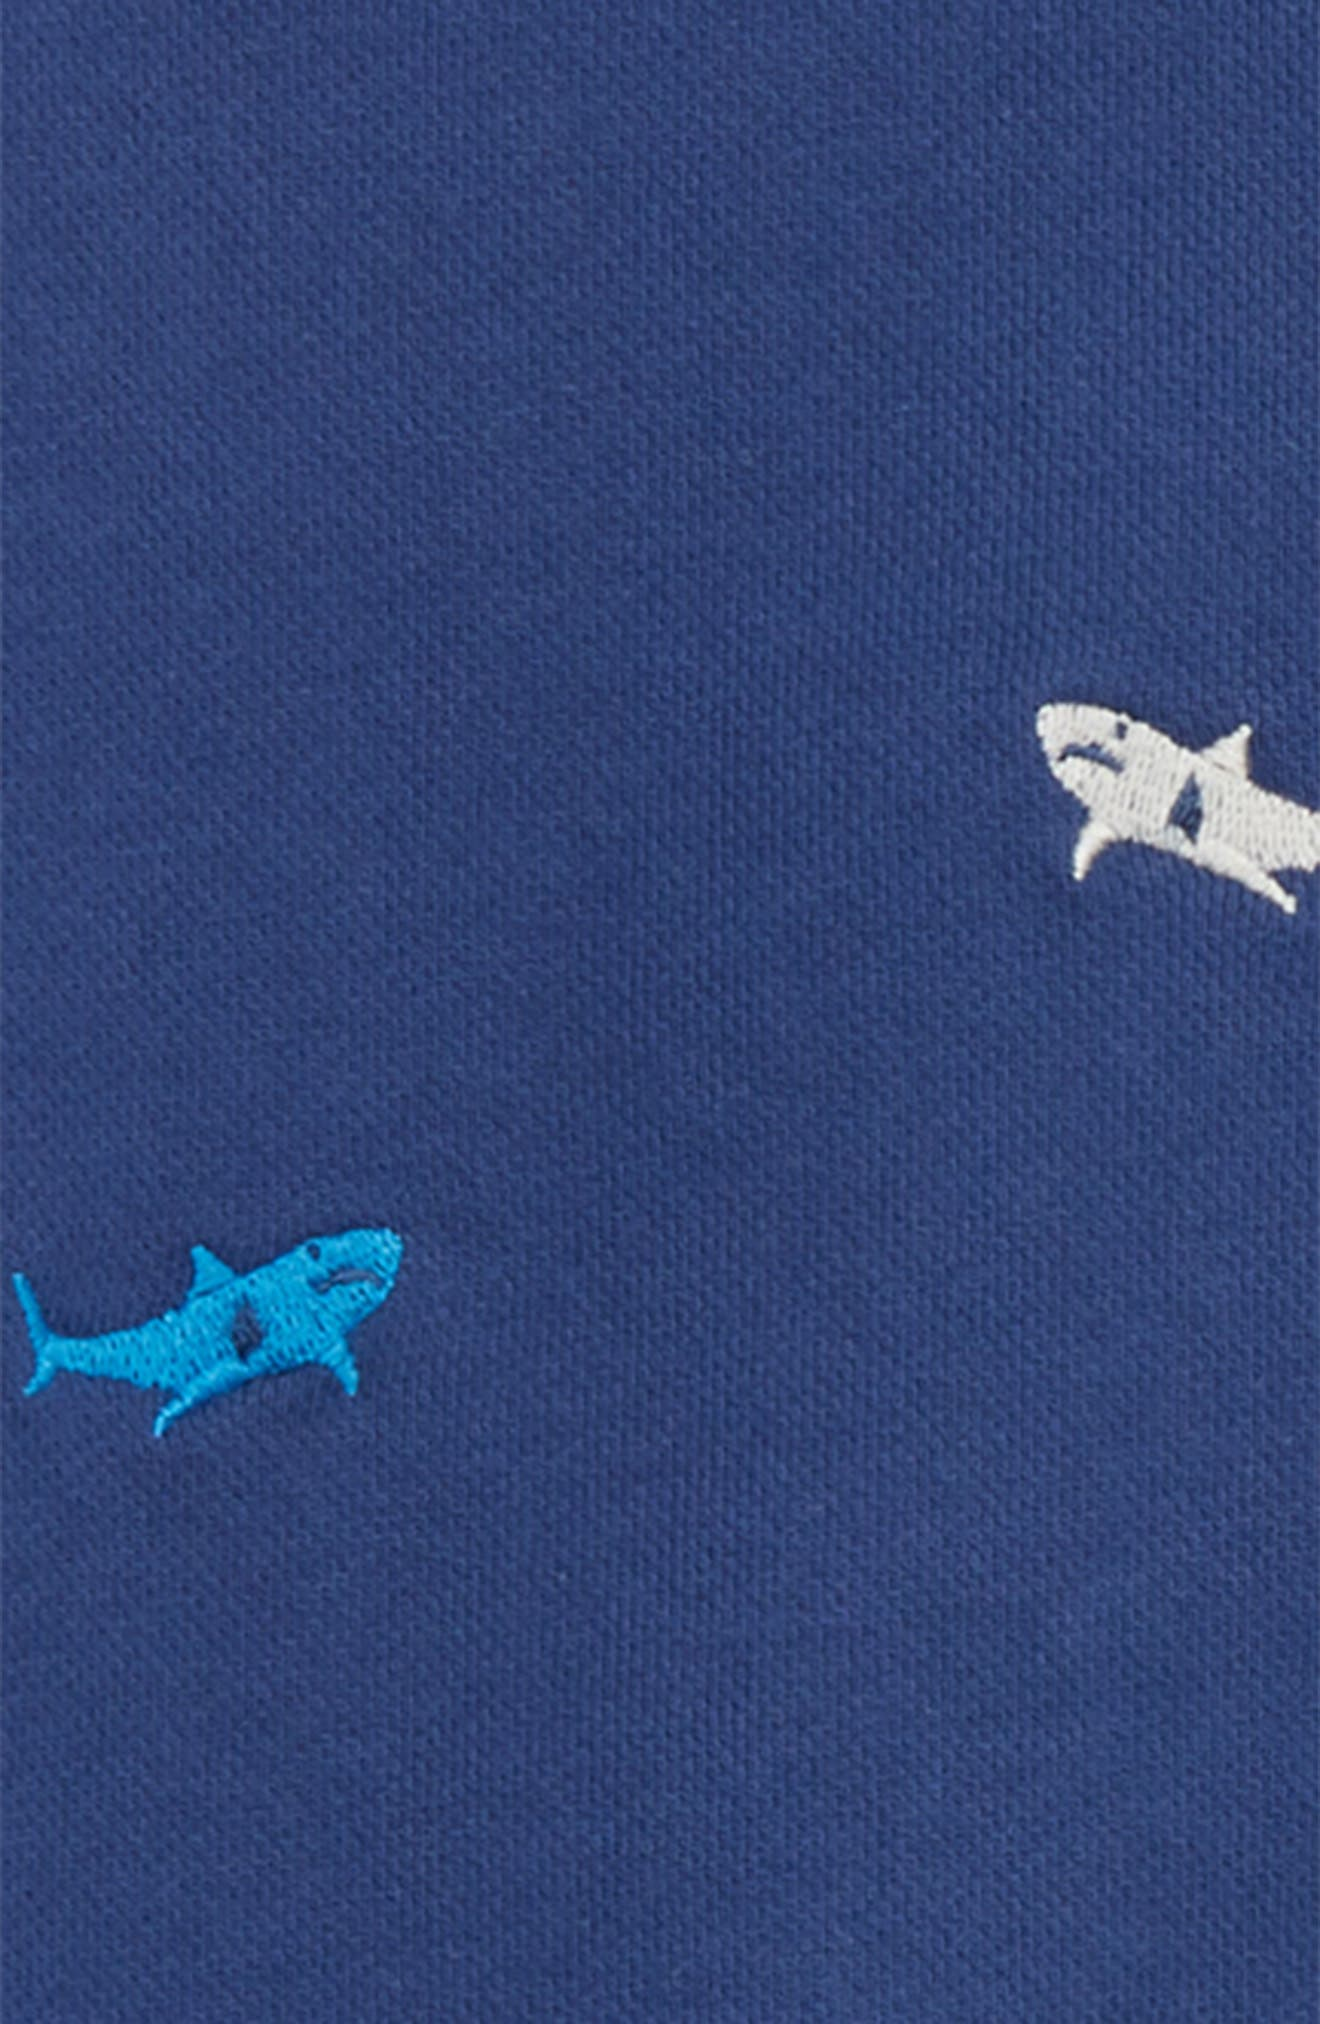 Castaway Shark Embroidered Sweatshirt,                             Alternate thumbnail 2, color,                             Beacon Blue Embroidery